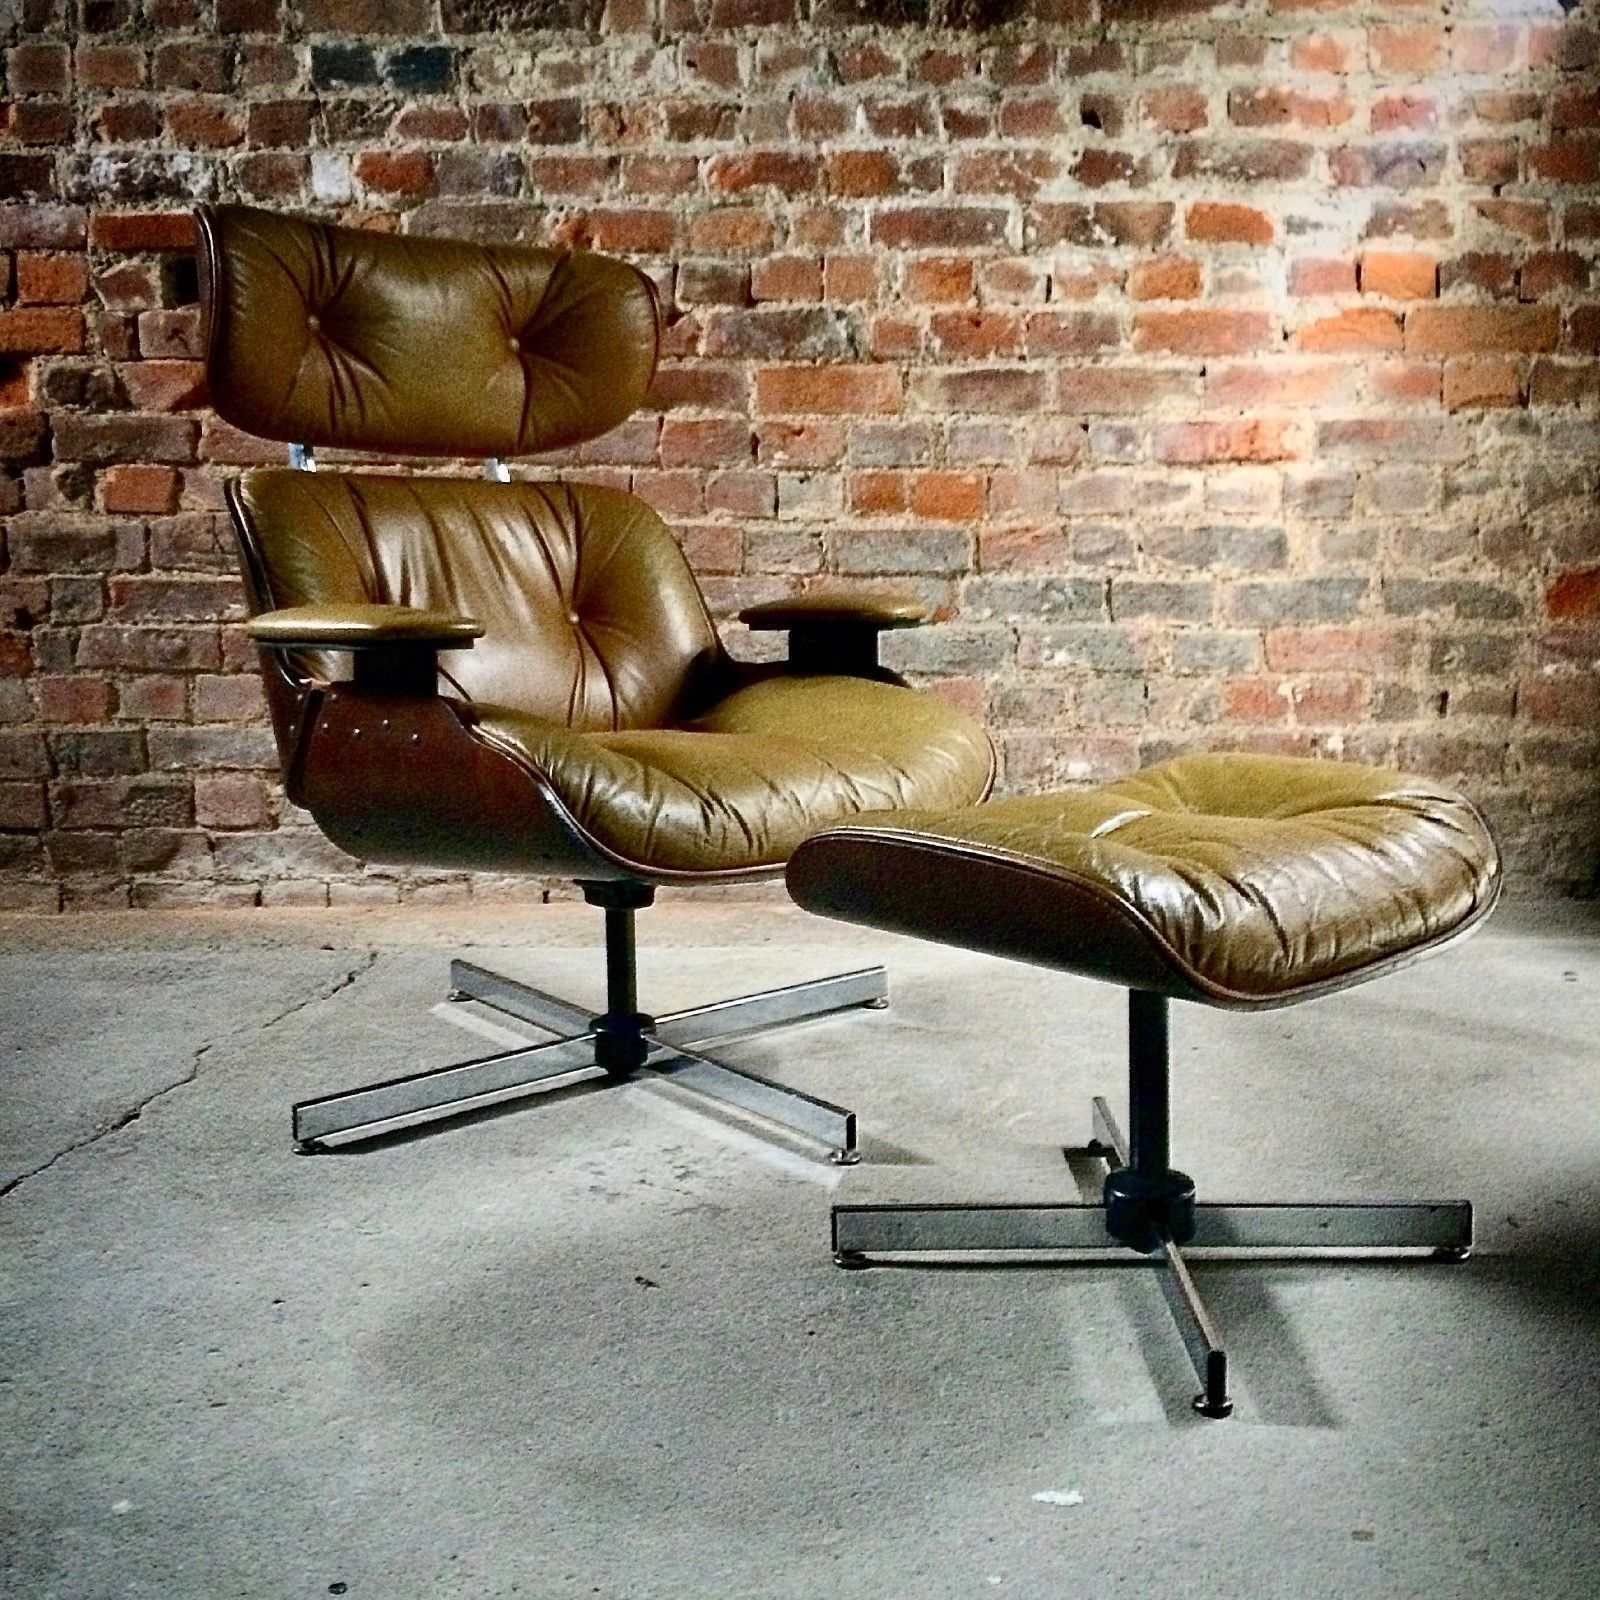 Astonishing Mid Century Selig Plycraft Lounge Chair Ottoman Eames Style Circa 1960S Pdpeps Interior Chair Design Pdpepsorg